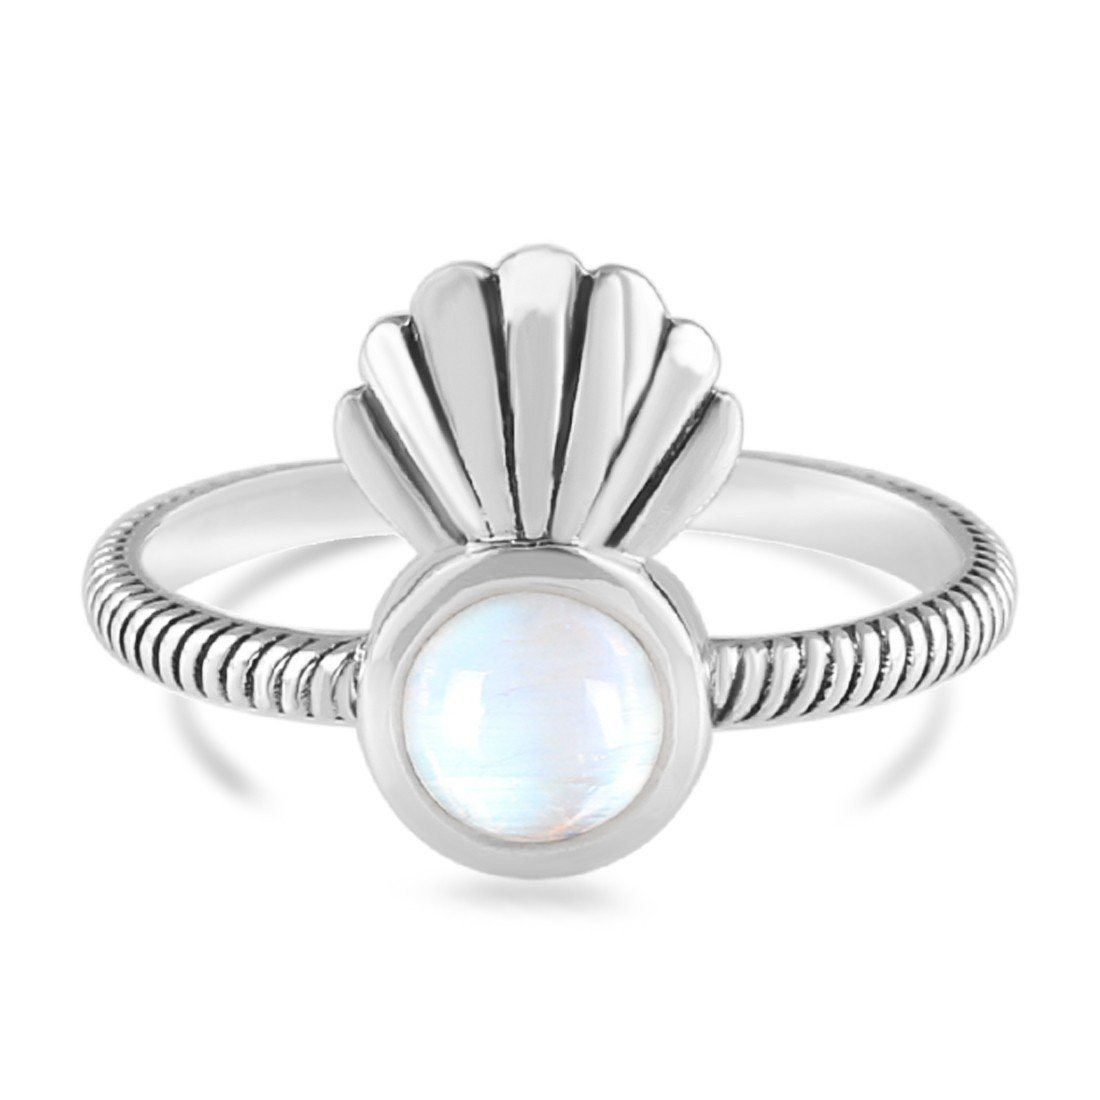 Moonstone Ring-Moon'S Sea Shell Sale Item 925 SILVER & MOONSTONE